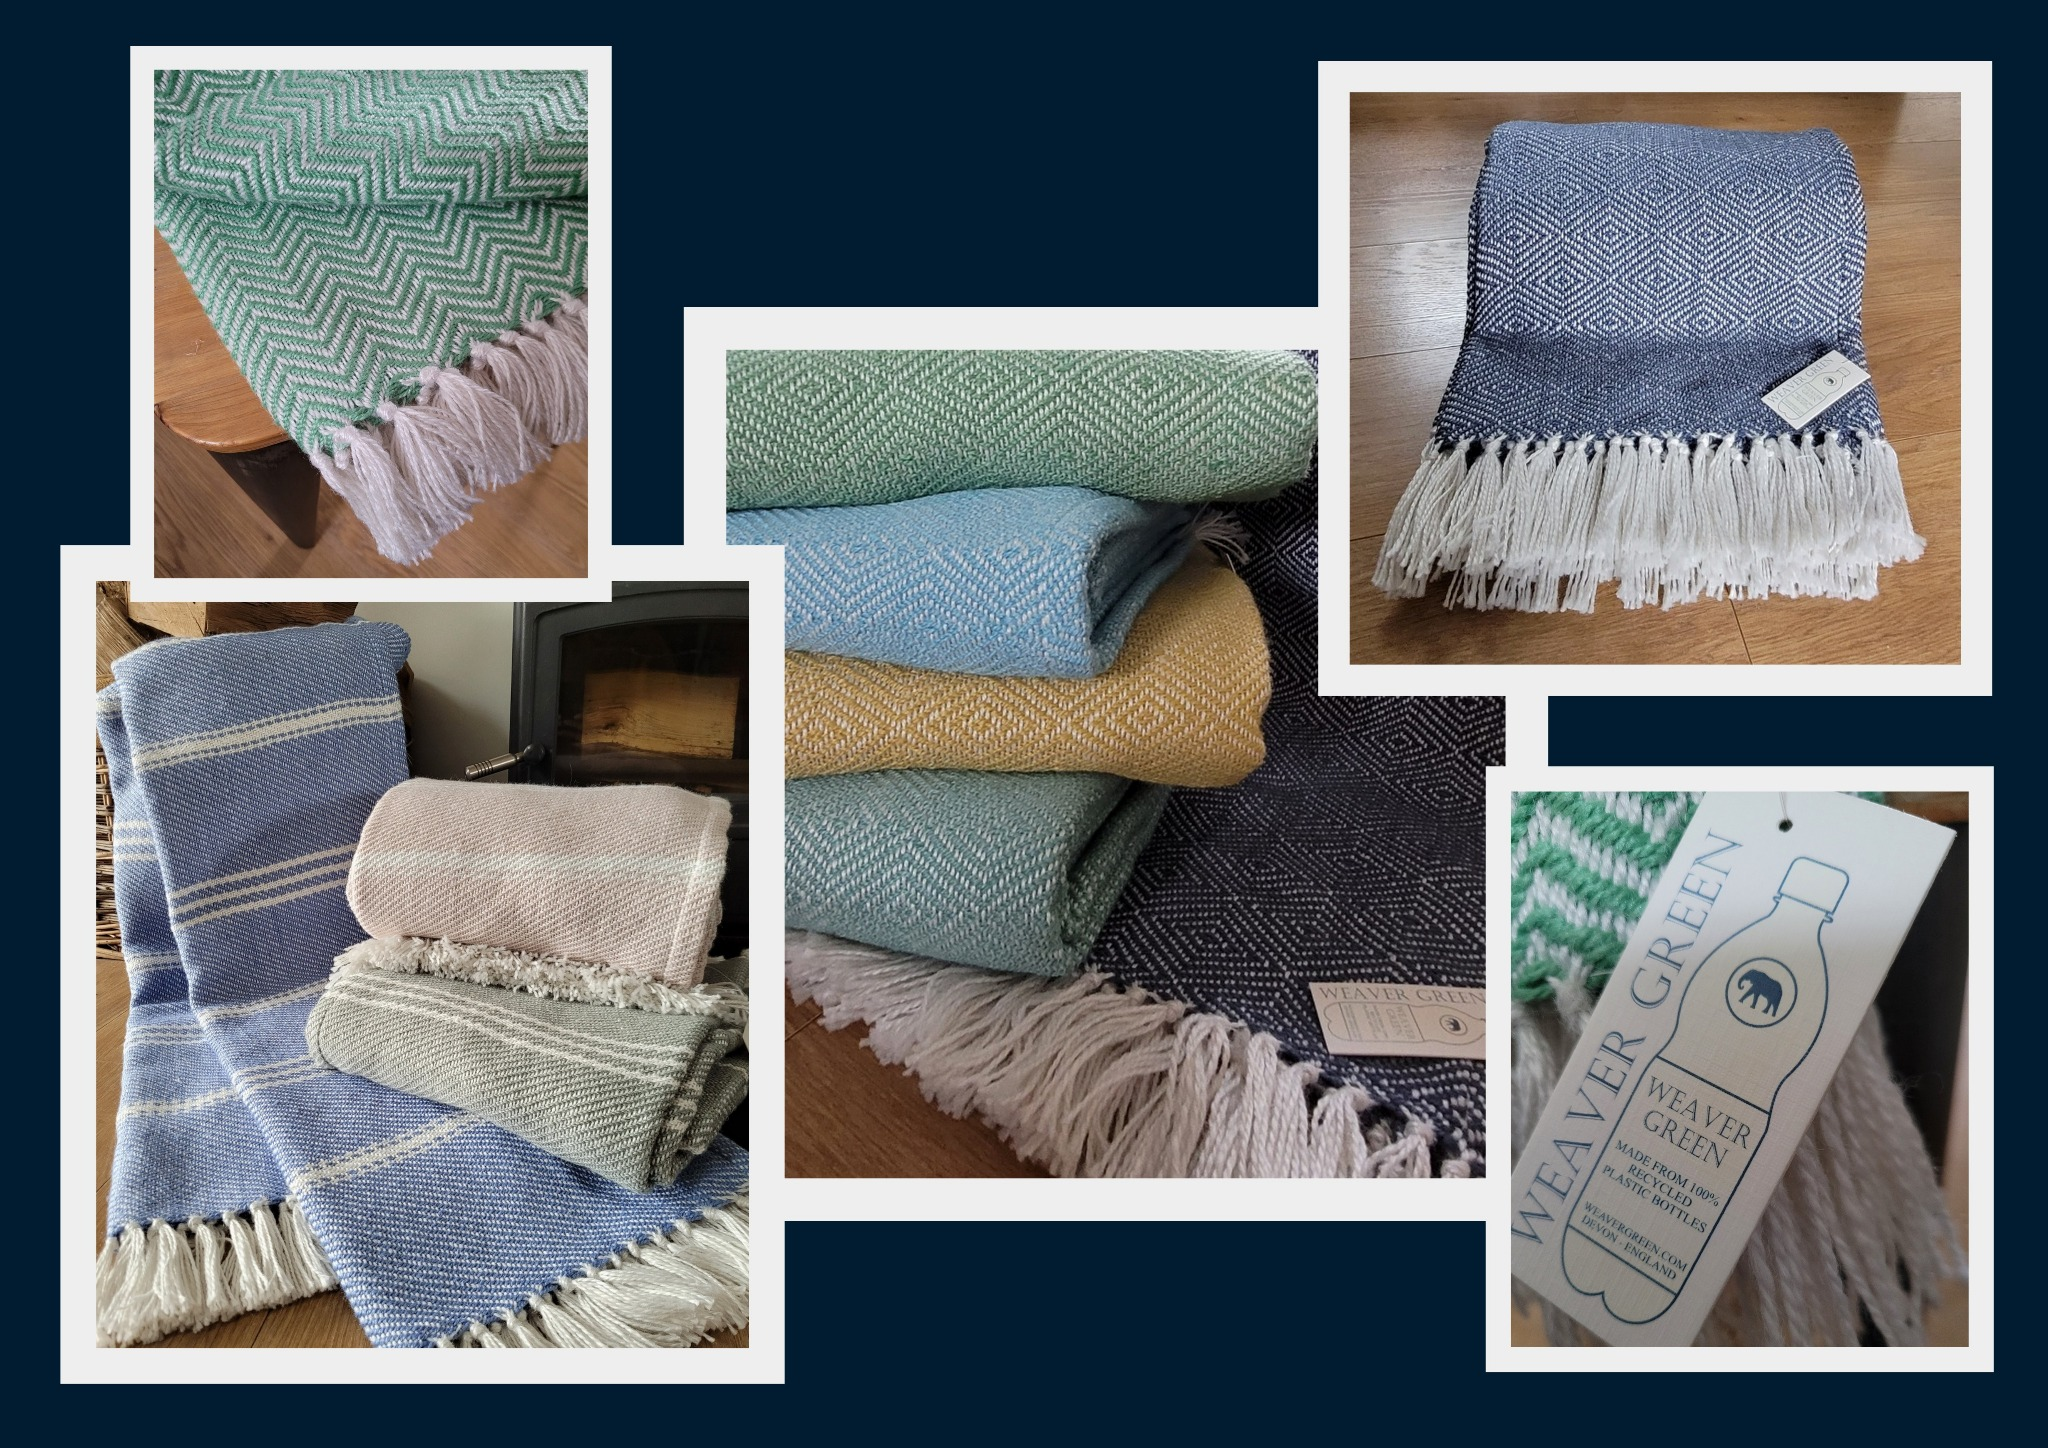 Throws made from 100% recycled plastic bottles.